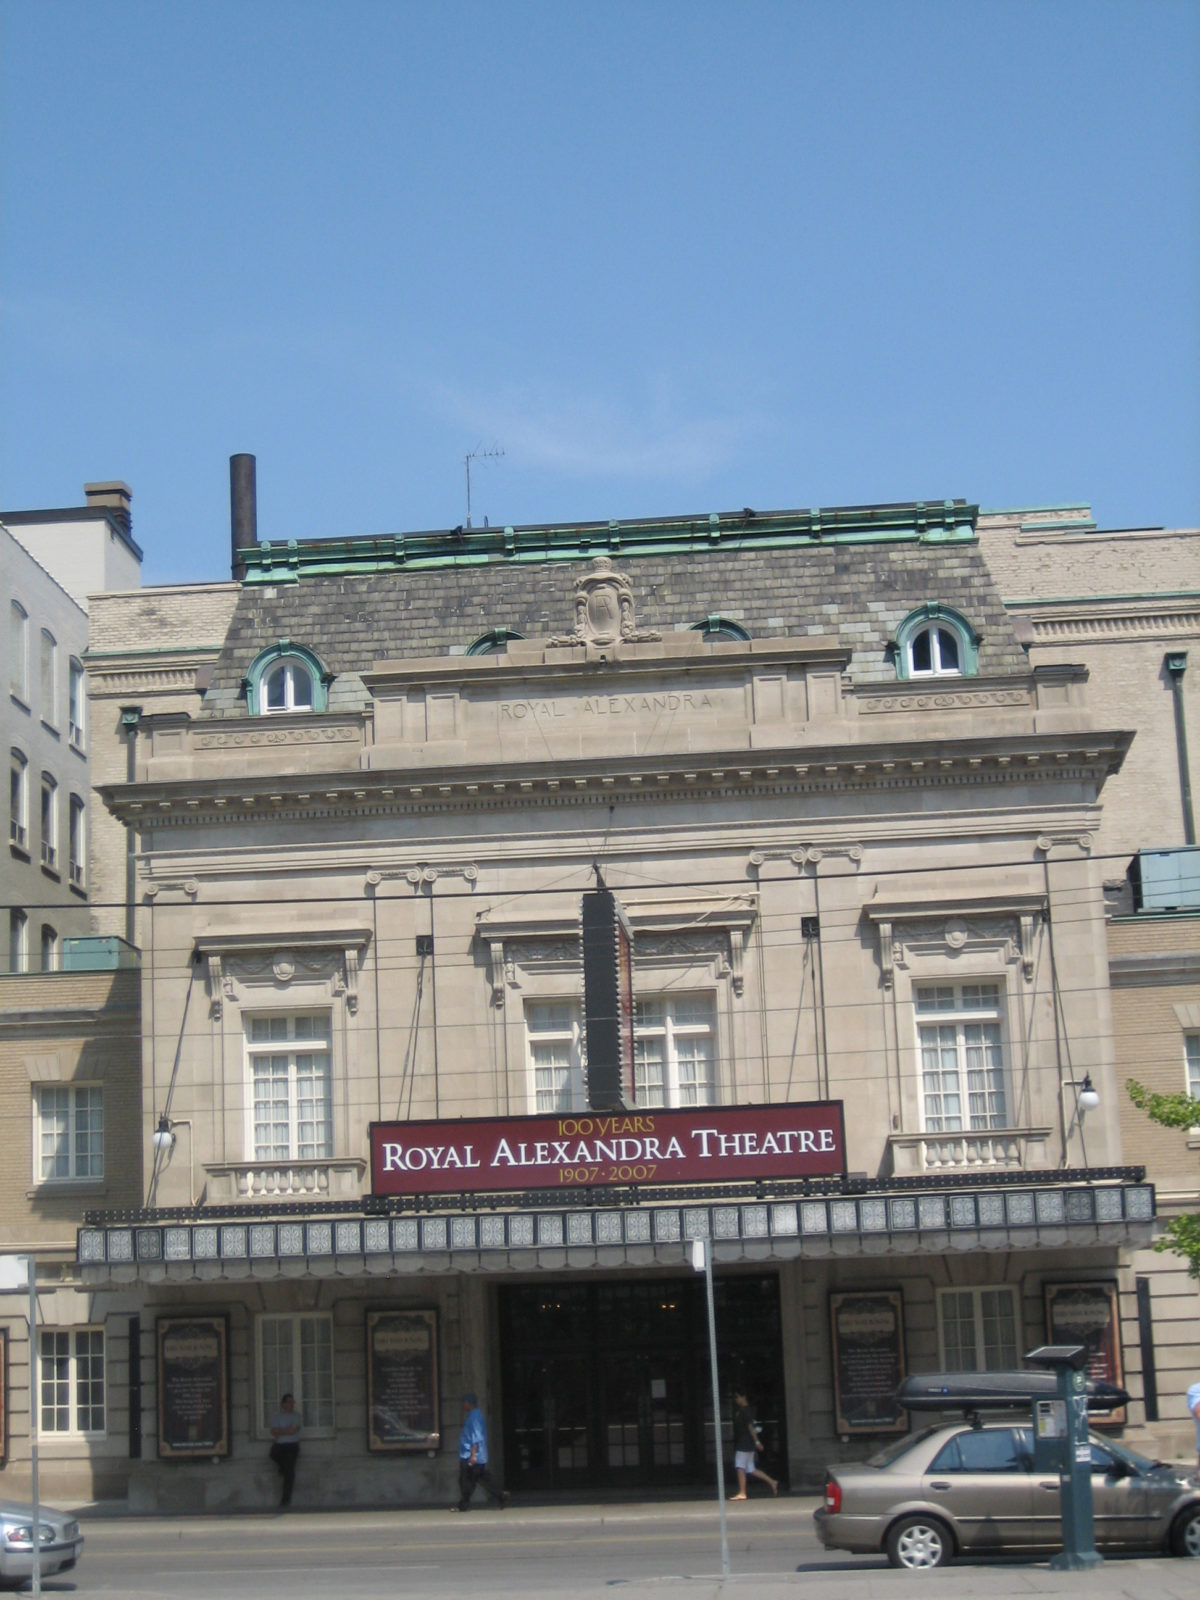 King-Royal Alexandre Theatre, In Toronto